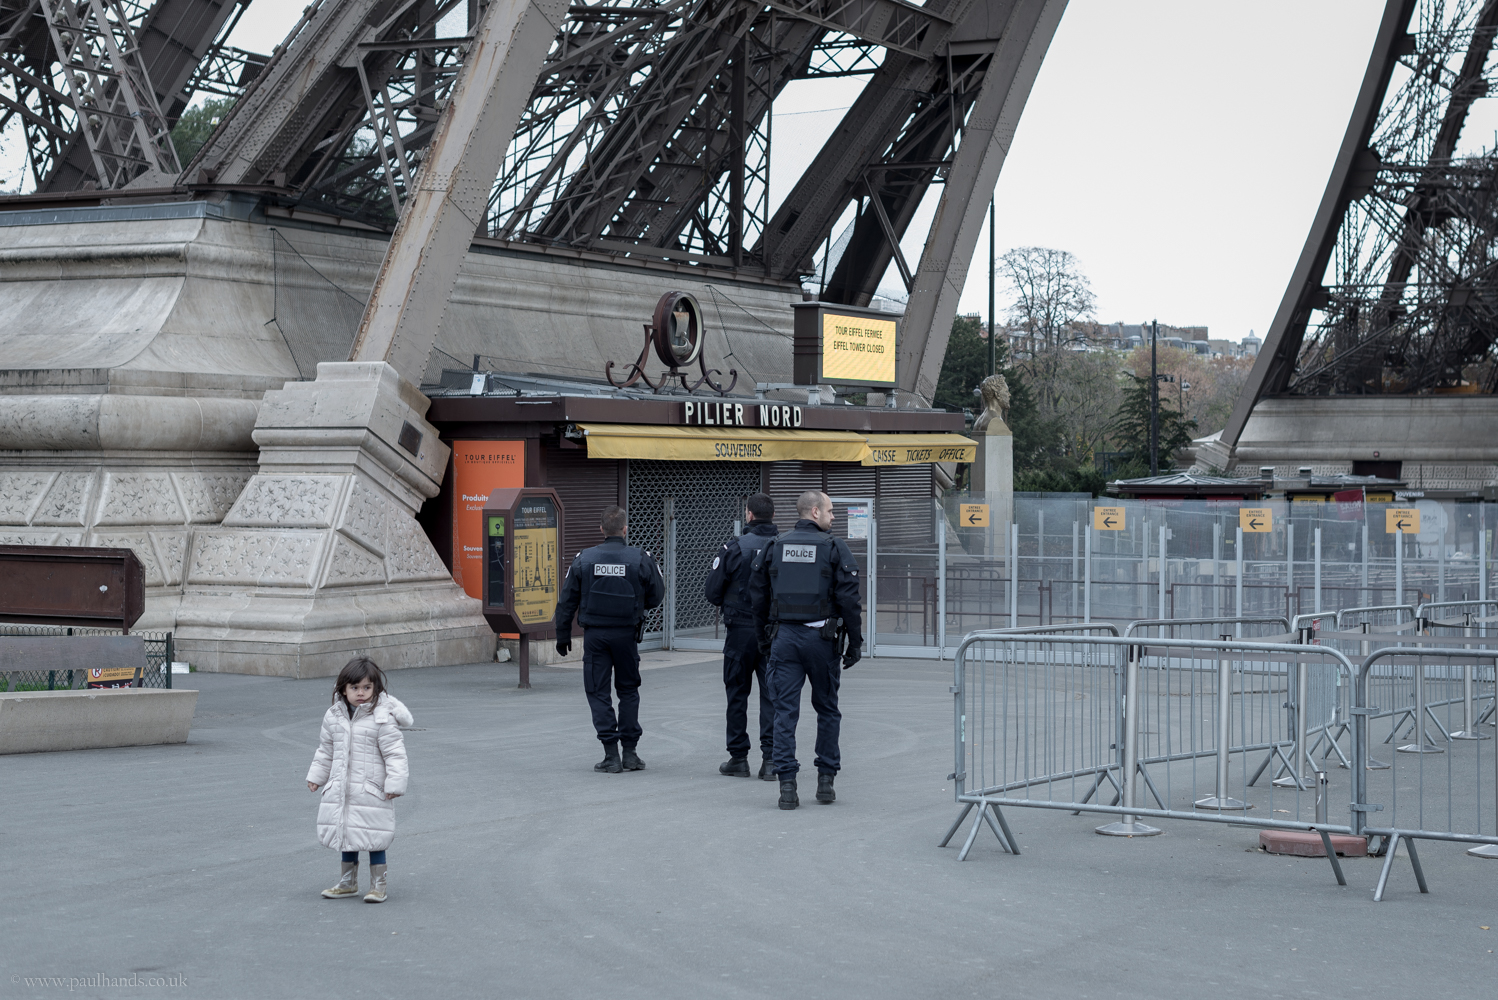 Paul Hands Photography, Terror attacks in Paris, The day after, Paris, Eiffel Tower, Police, Army, Armed Guards,